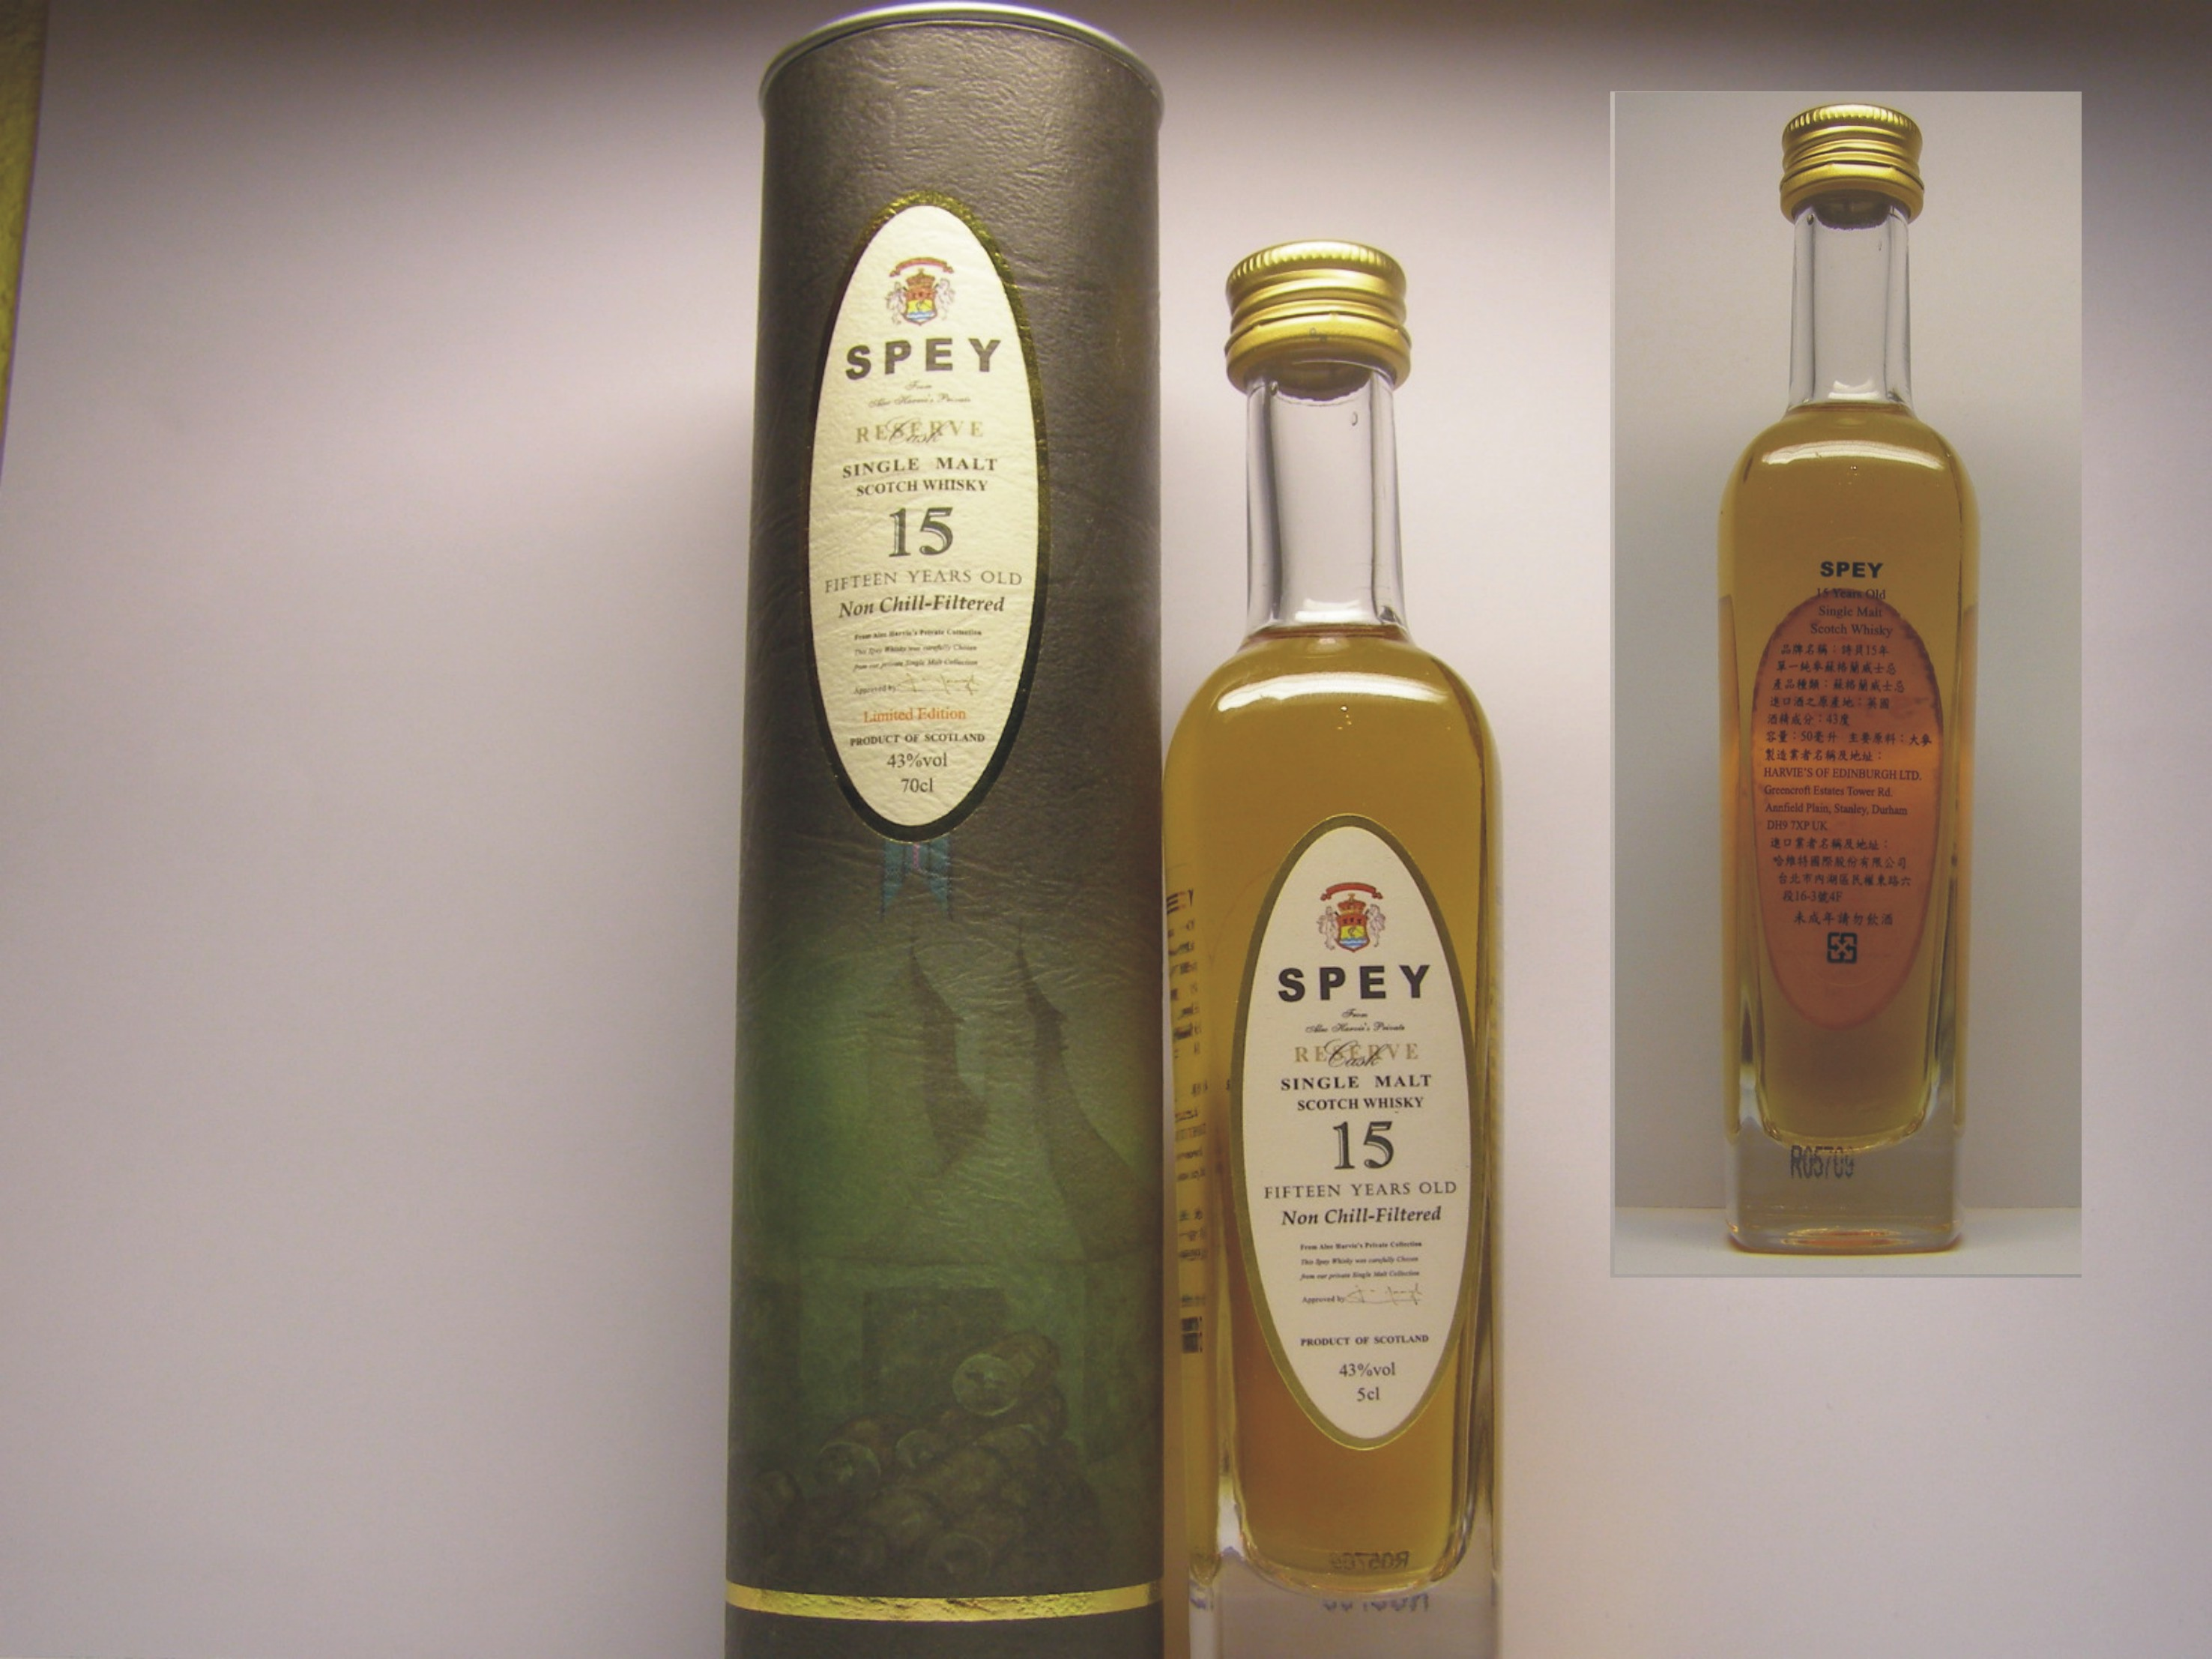 SPEY Reserve 15yo Single Malt Scotch Whisky